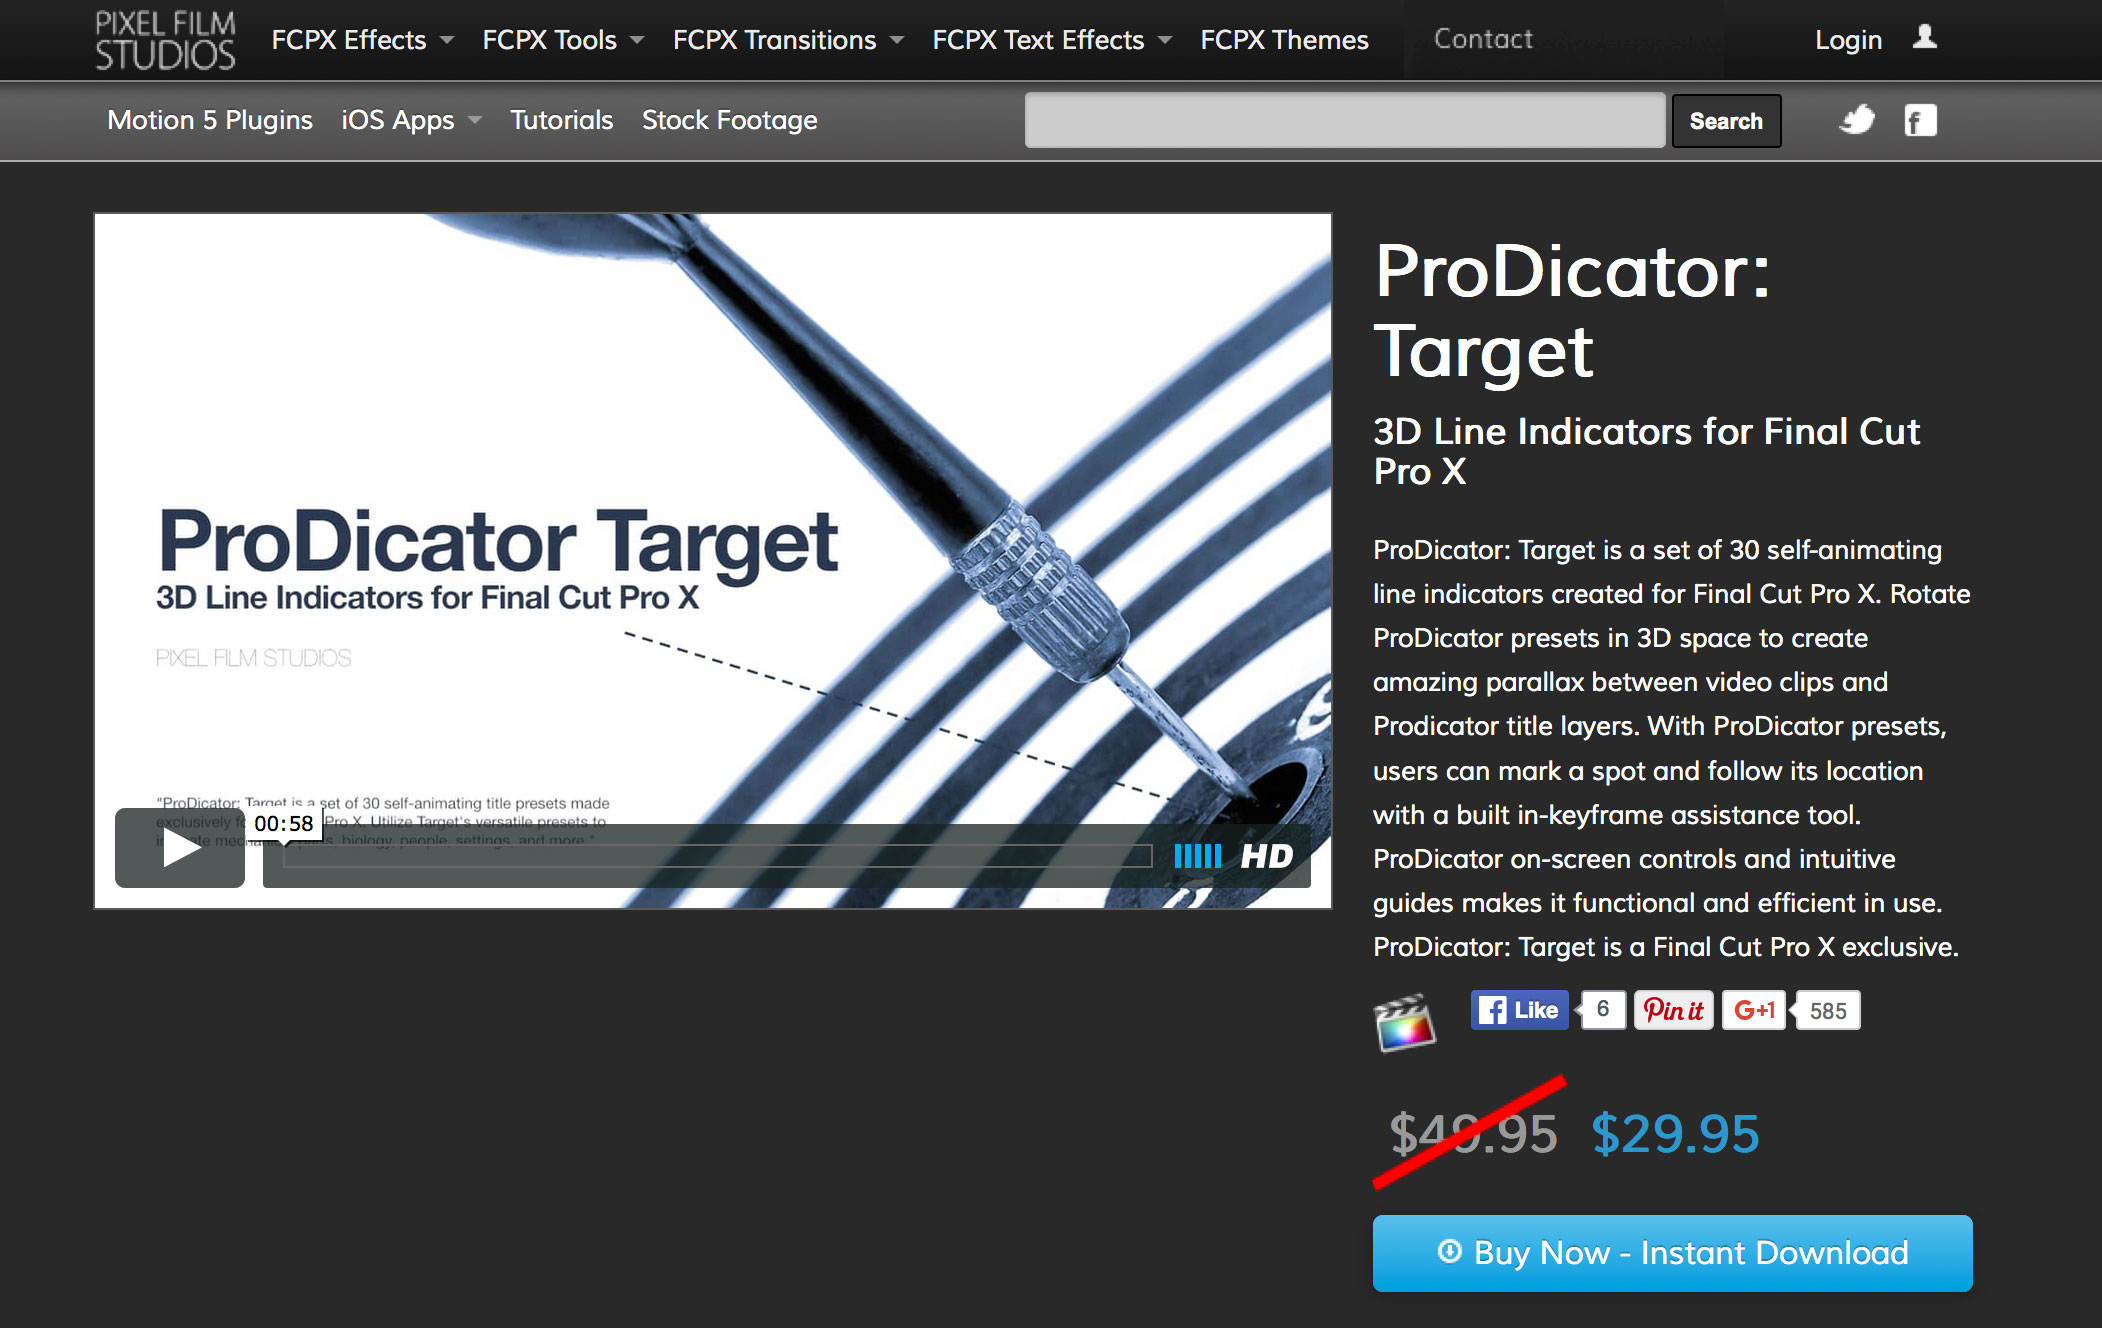 Drawing Lines In Final Cut Pro : Prodicator target was released by pixel film studios for